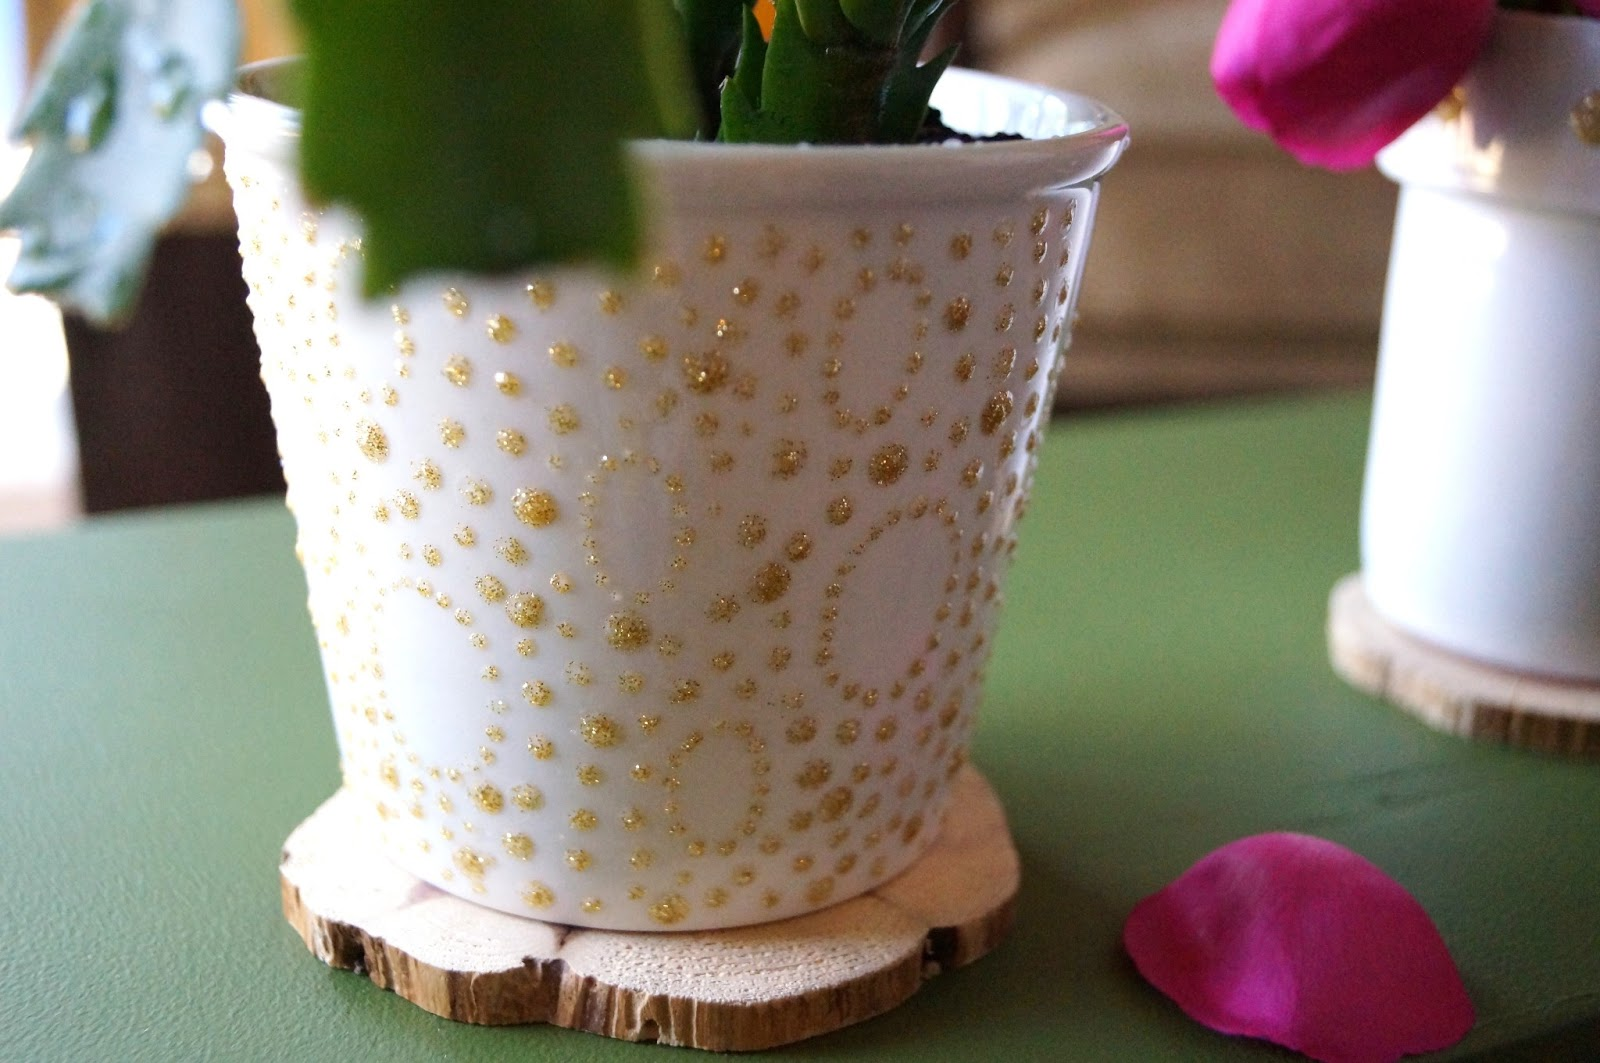 Puffy-Printed & Fun Ways to Decorate Your Flower Pots